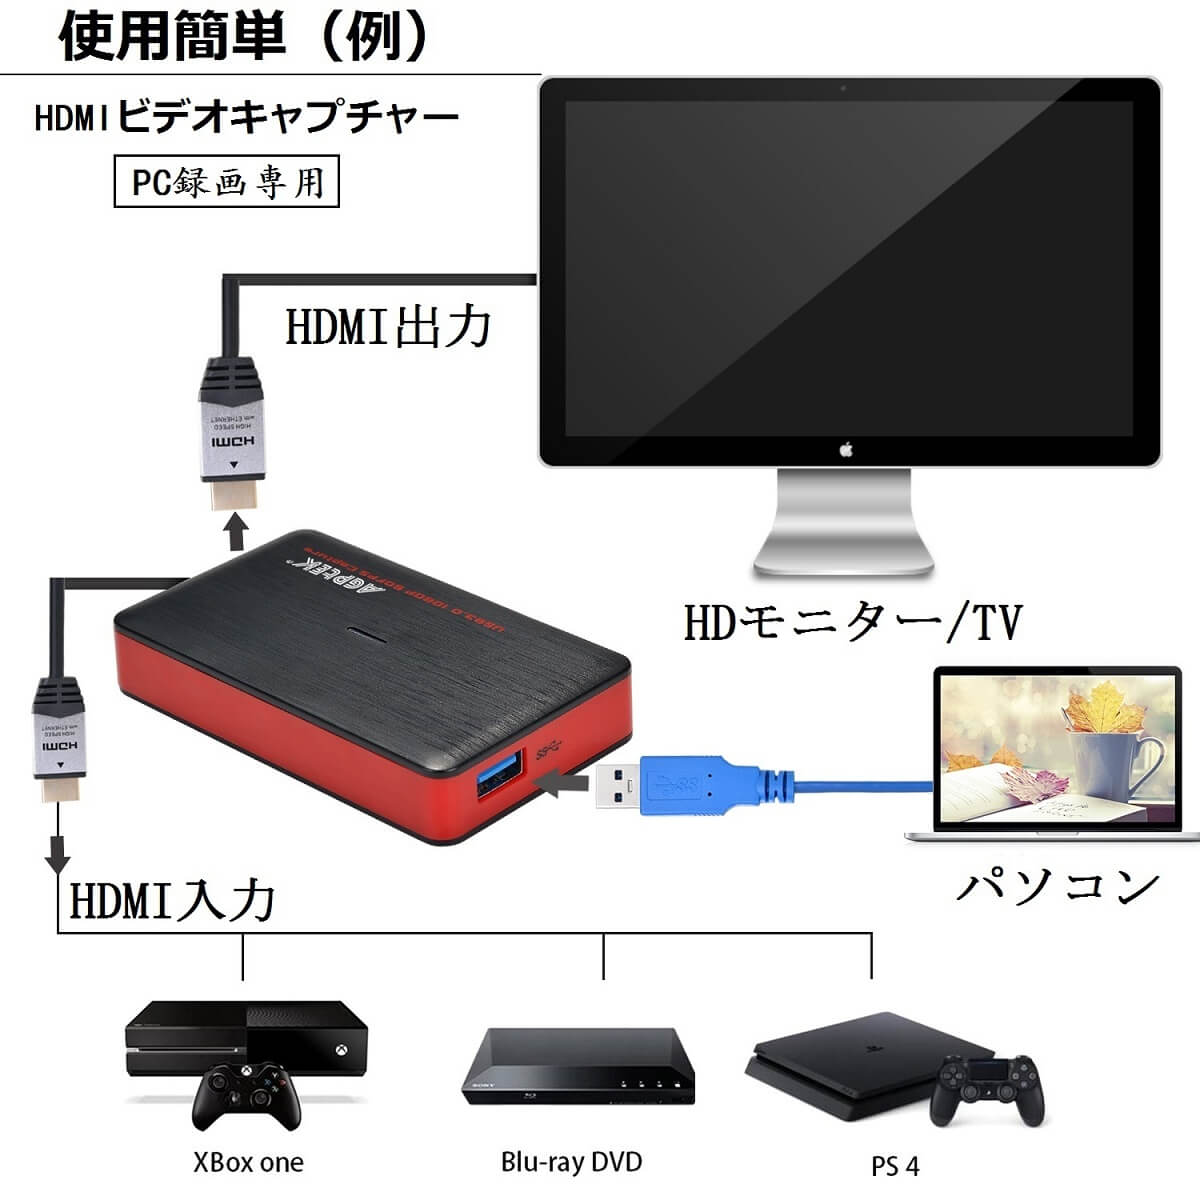 There are YouTube, Facebook for the recording / live delivery of the game  that AGPTEK HDMI game capture game recorder video capture USB3 0 connection